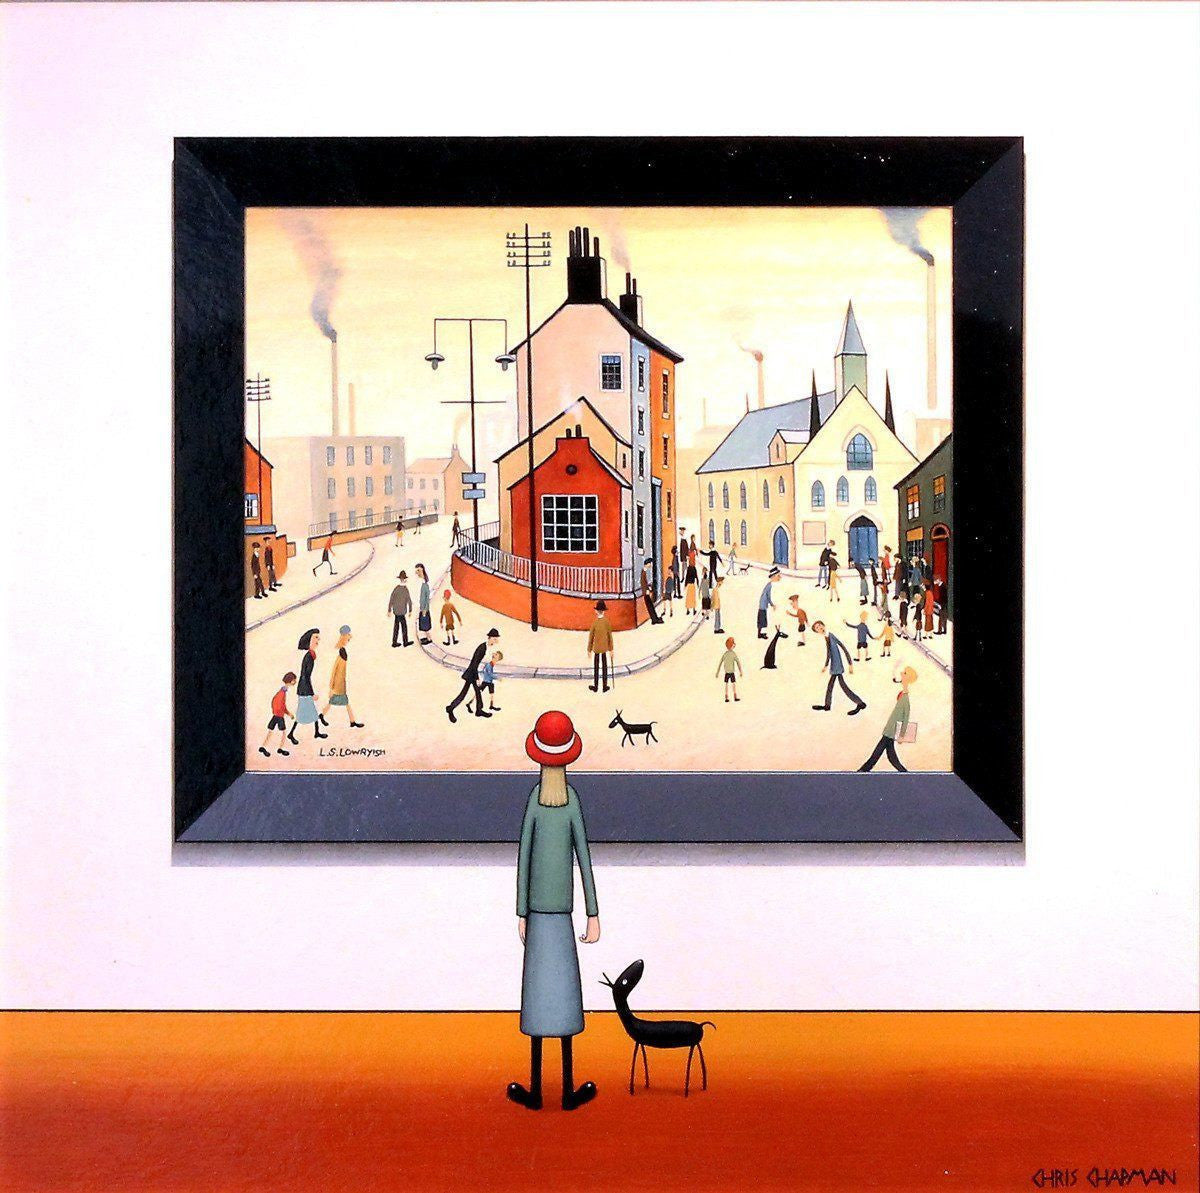 Walking Past The Church - SOLD Chris Chapman